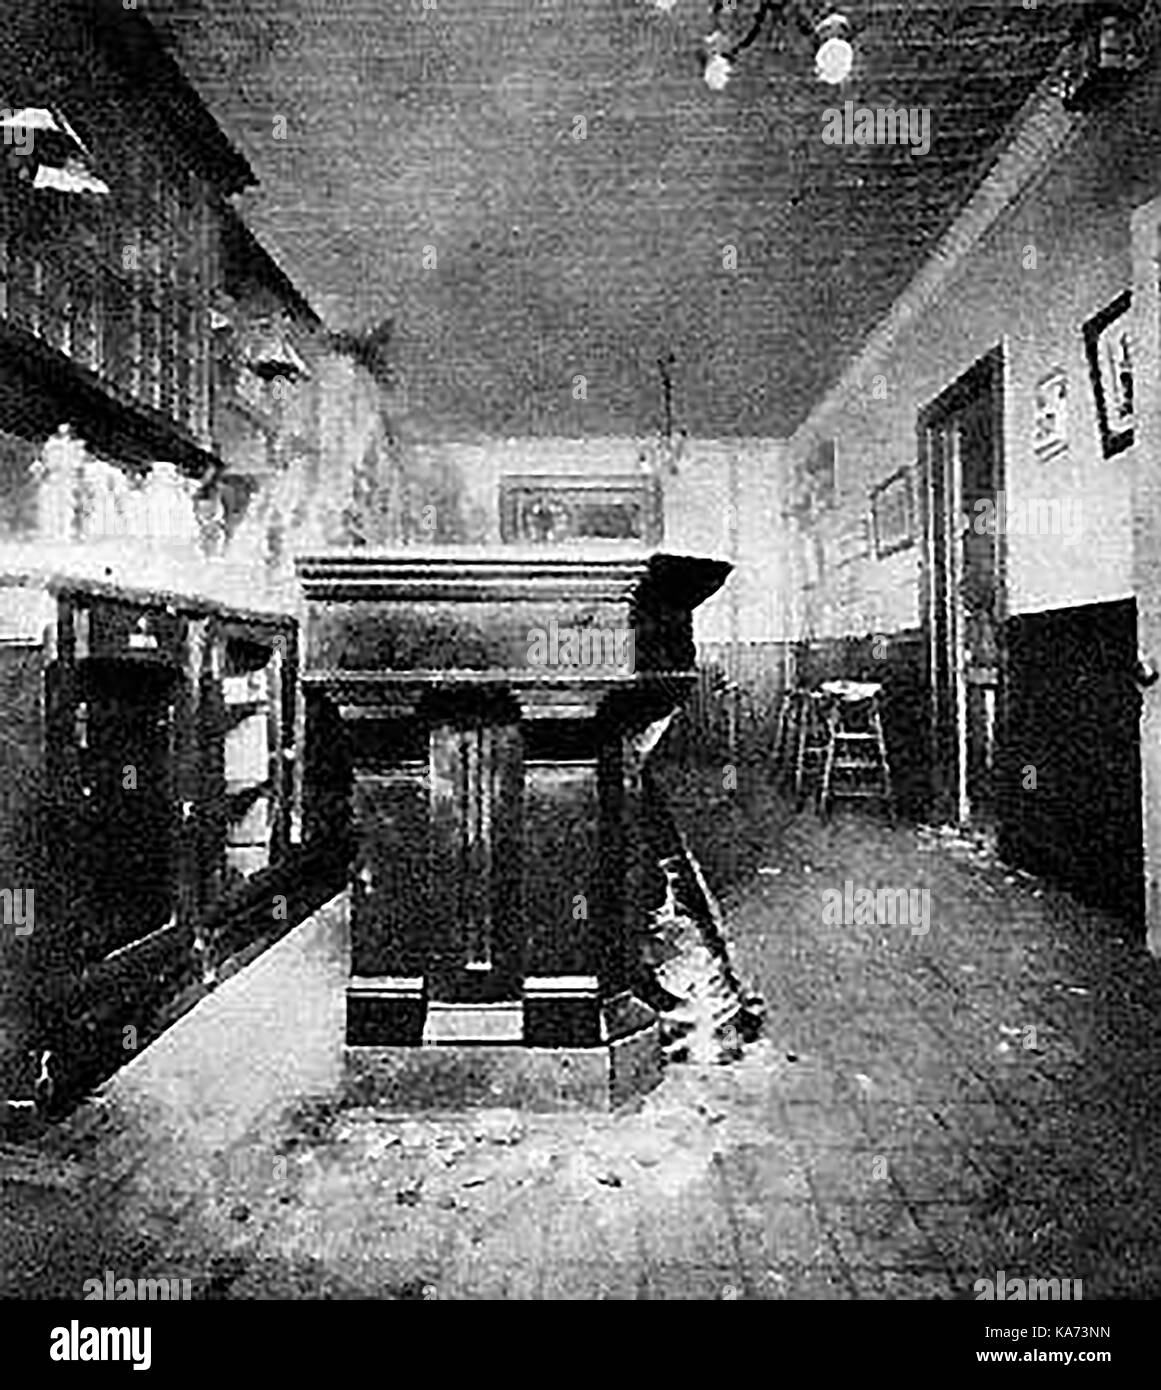 1920's/1930's PROHIBITION - A photograph showing the discovery of a New York speakeasy bar behind a restaurant - Stock Image